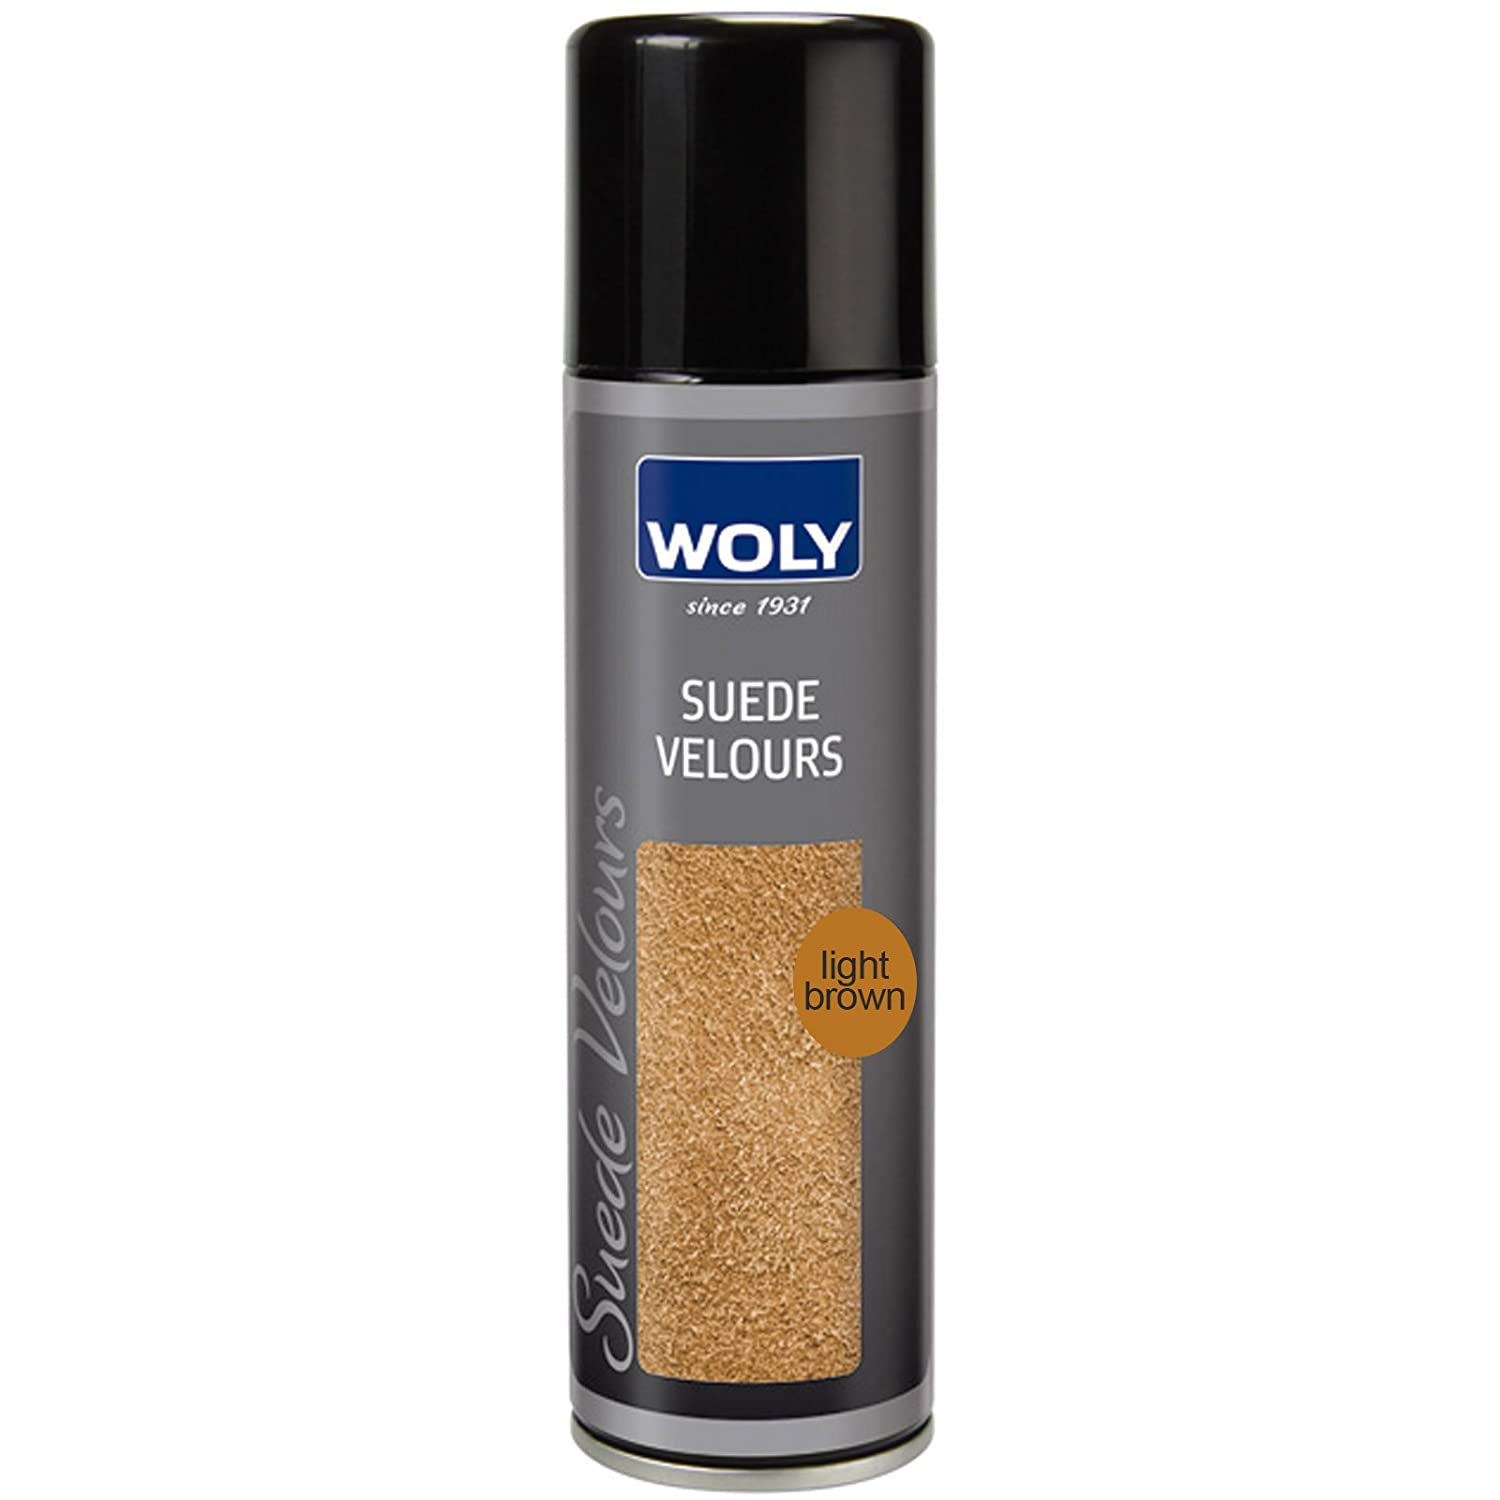 Woly Suede Velours Renovating Spray